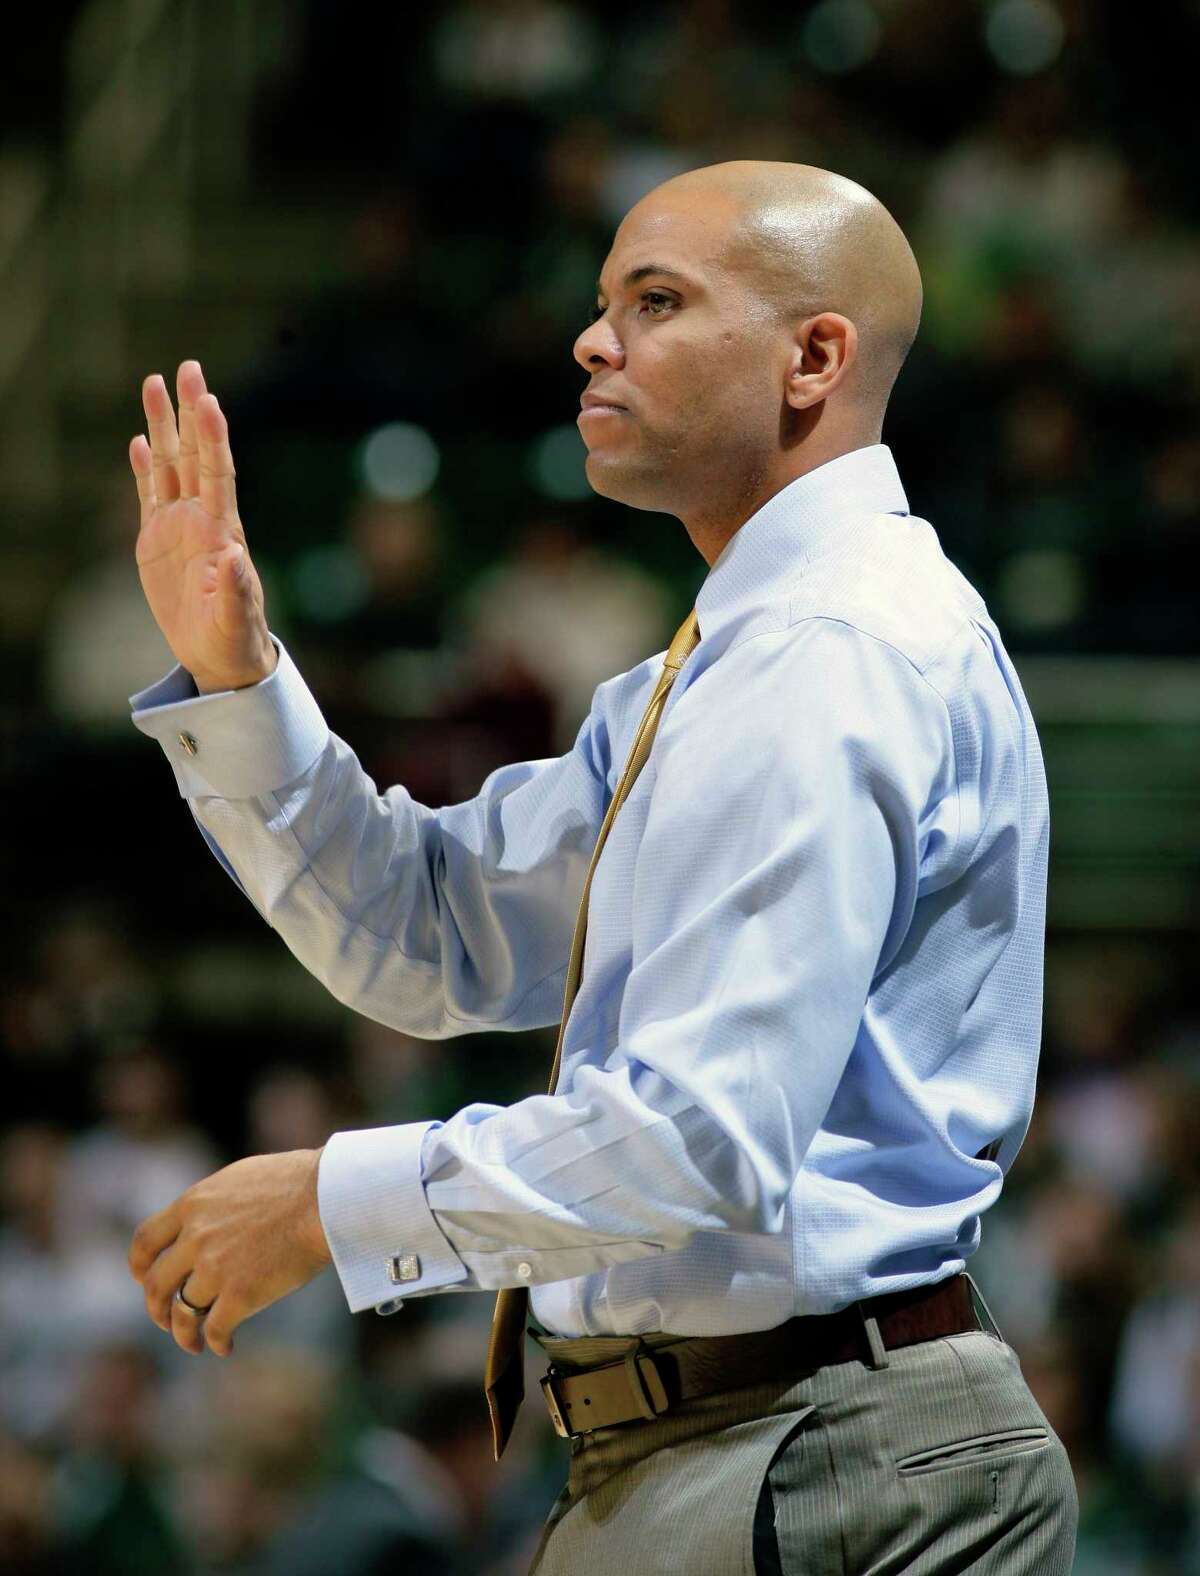 Mount St. Mary's coach Jamion Christian gives instructions to his team during the first half of an NCAA college basketball game against Michigan State, Friday, Nov. 29, 2013, in East Lansing, Mich. Michigan State won 98-65. (AP Photo/Al Goldis) ORG XMIT: ELJ107